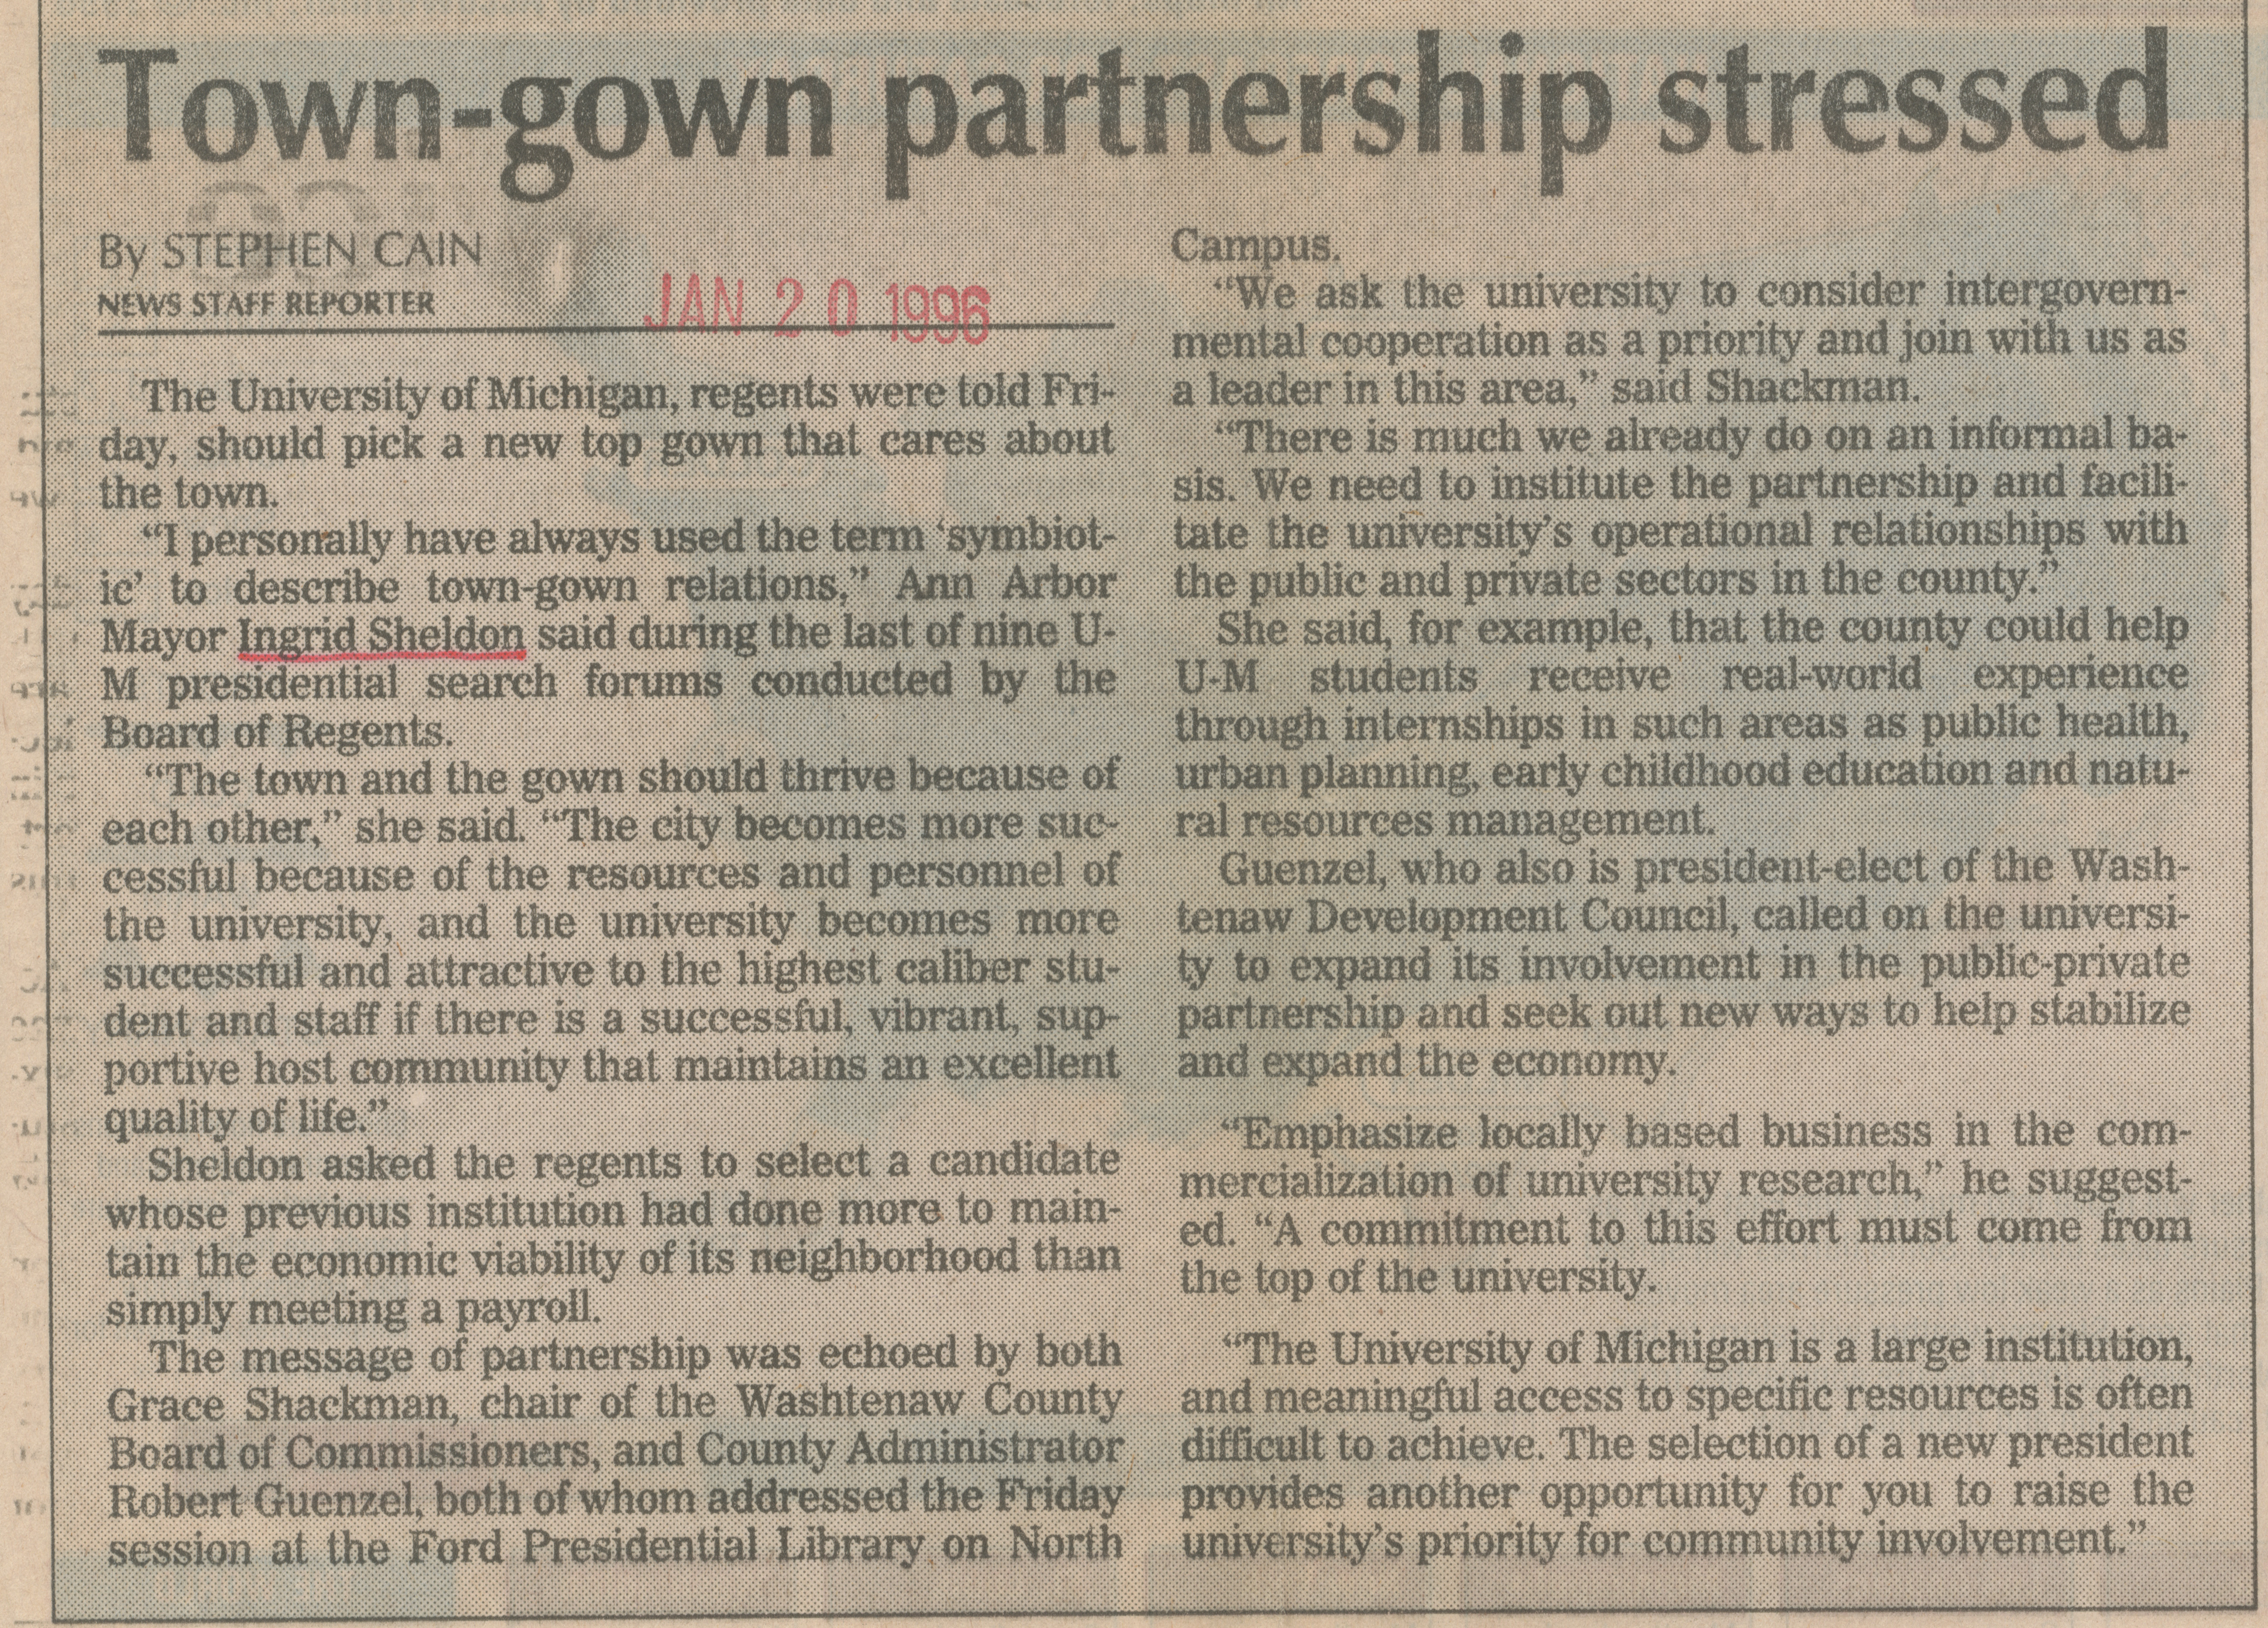 Town-gown partnership stressed  image